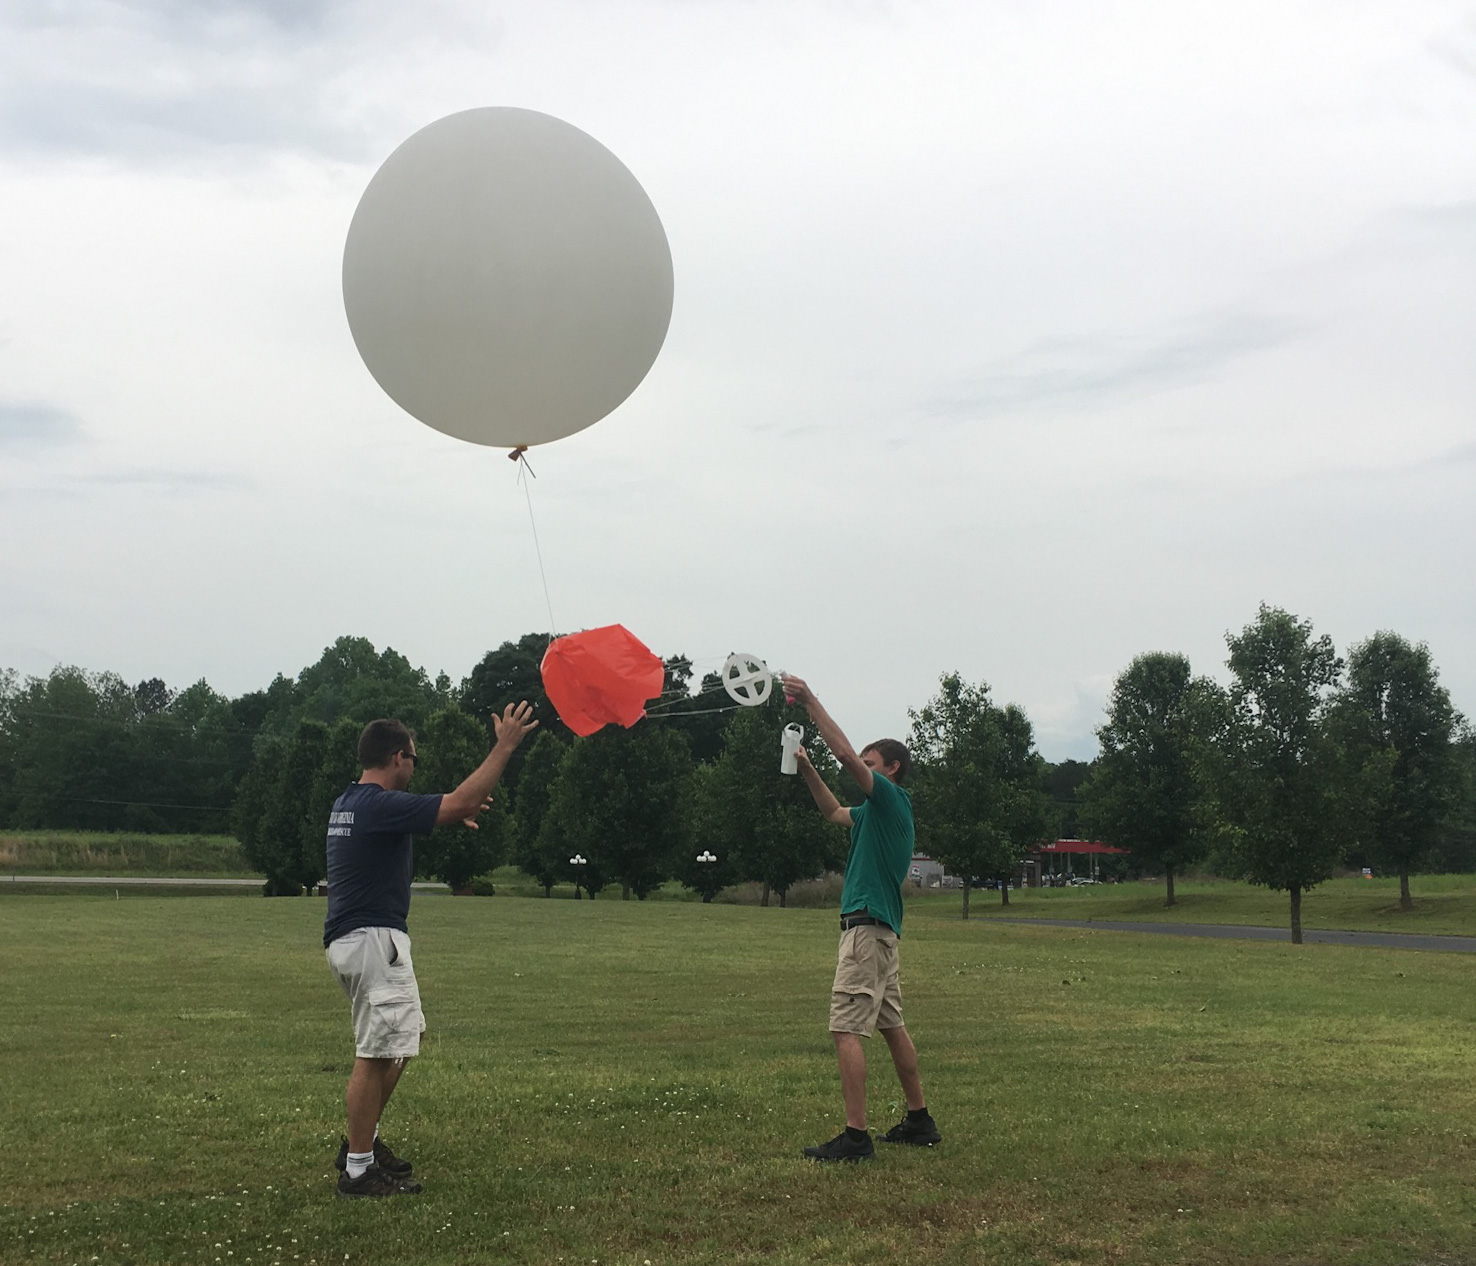 One man holding the bottom of the string as the other releases the large weather balloon